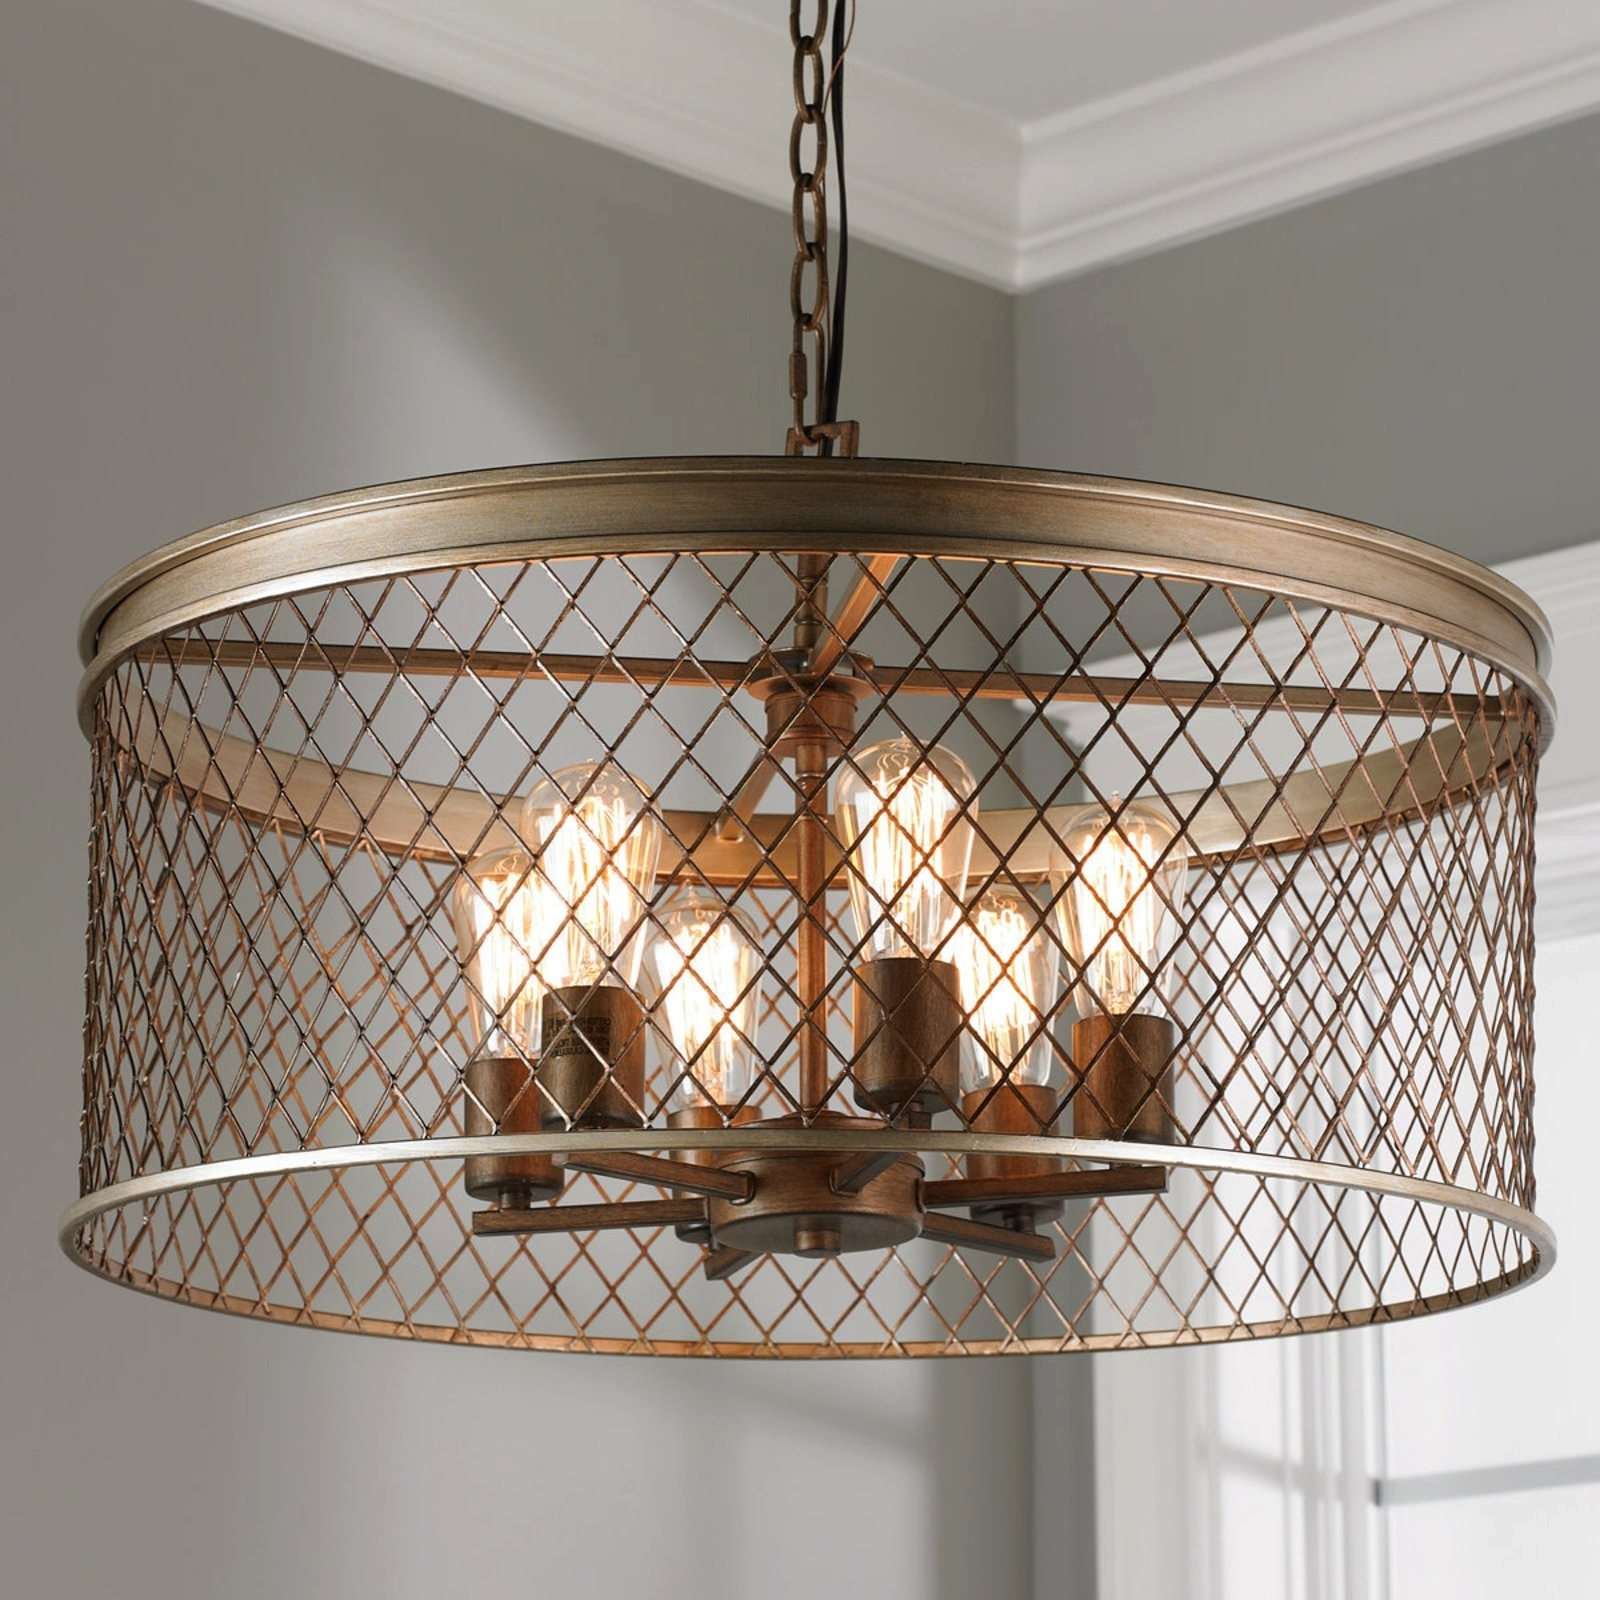 Cage Light Chandelier (View 6 of 20)